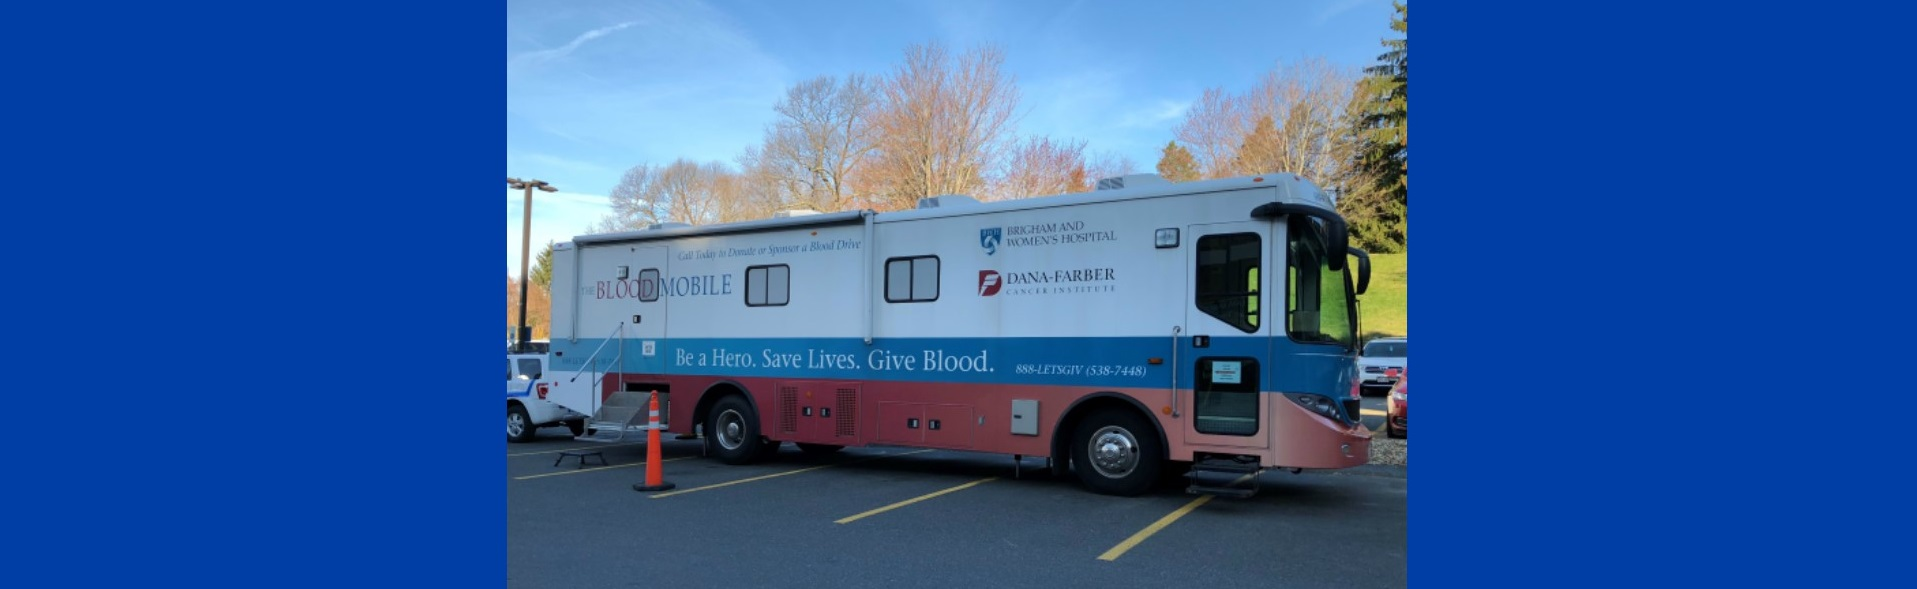 spedition mobel hoffner, dfci/bwh blood mobile visits bwfh, Design ideen